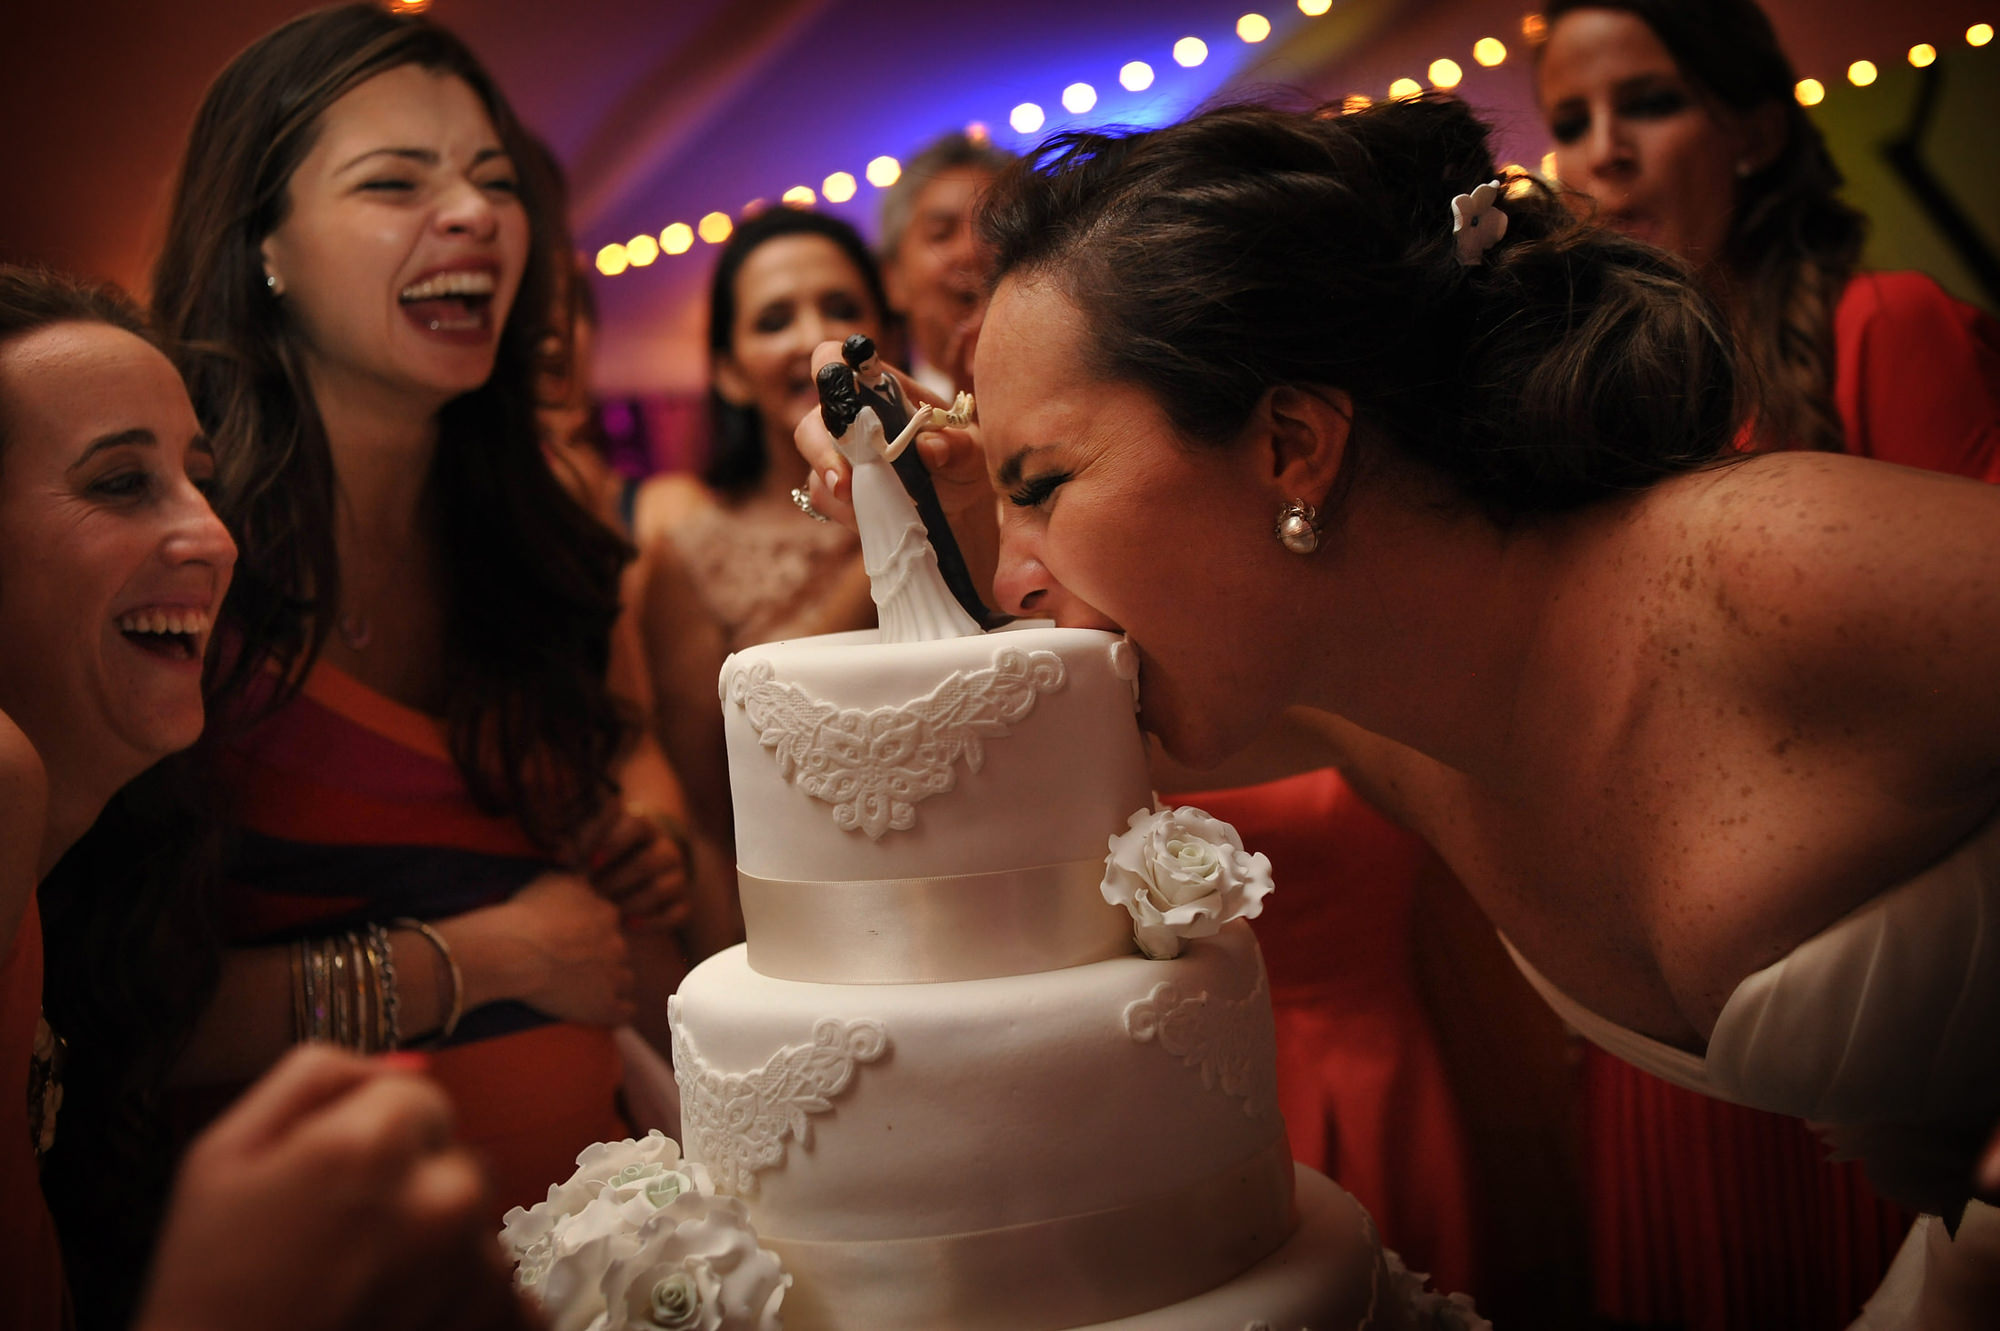 Bride bites into whole wedding cake - Daniel Aguilar Photographer